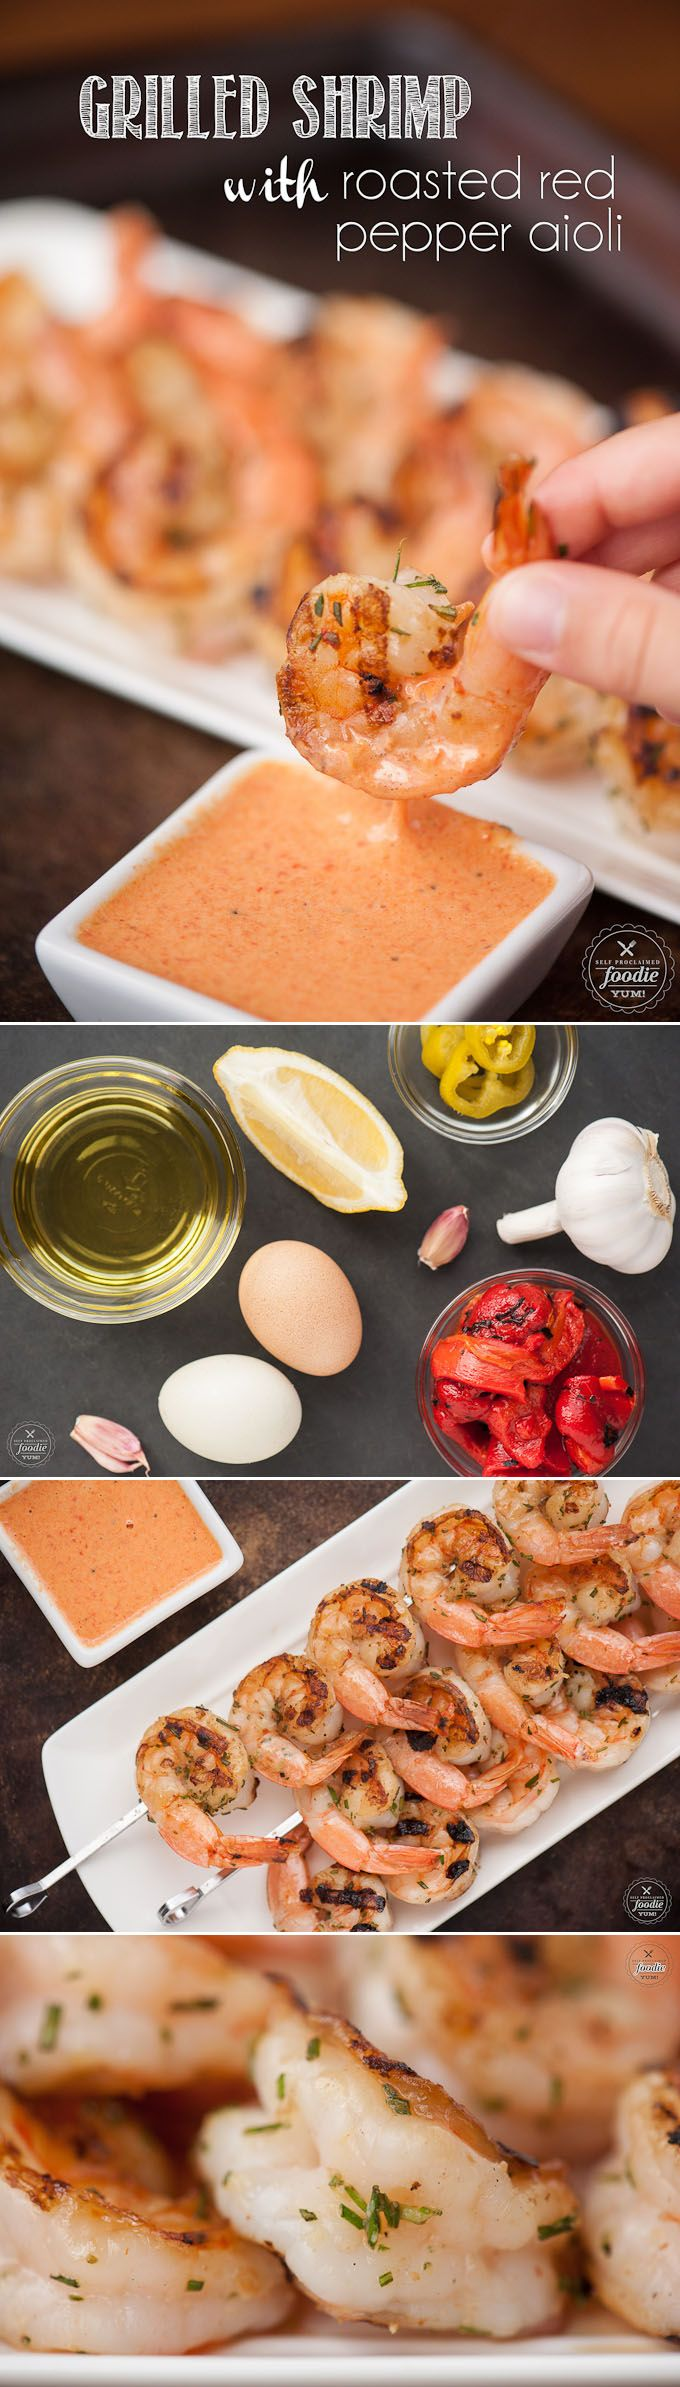 This red pepper marinated Grilled Shrimp with this scratch made Roasted Red Pepper Aioli makes the perfect flavorful summer appetizer or dinner.